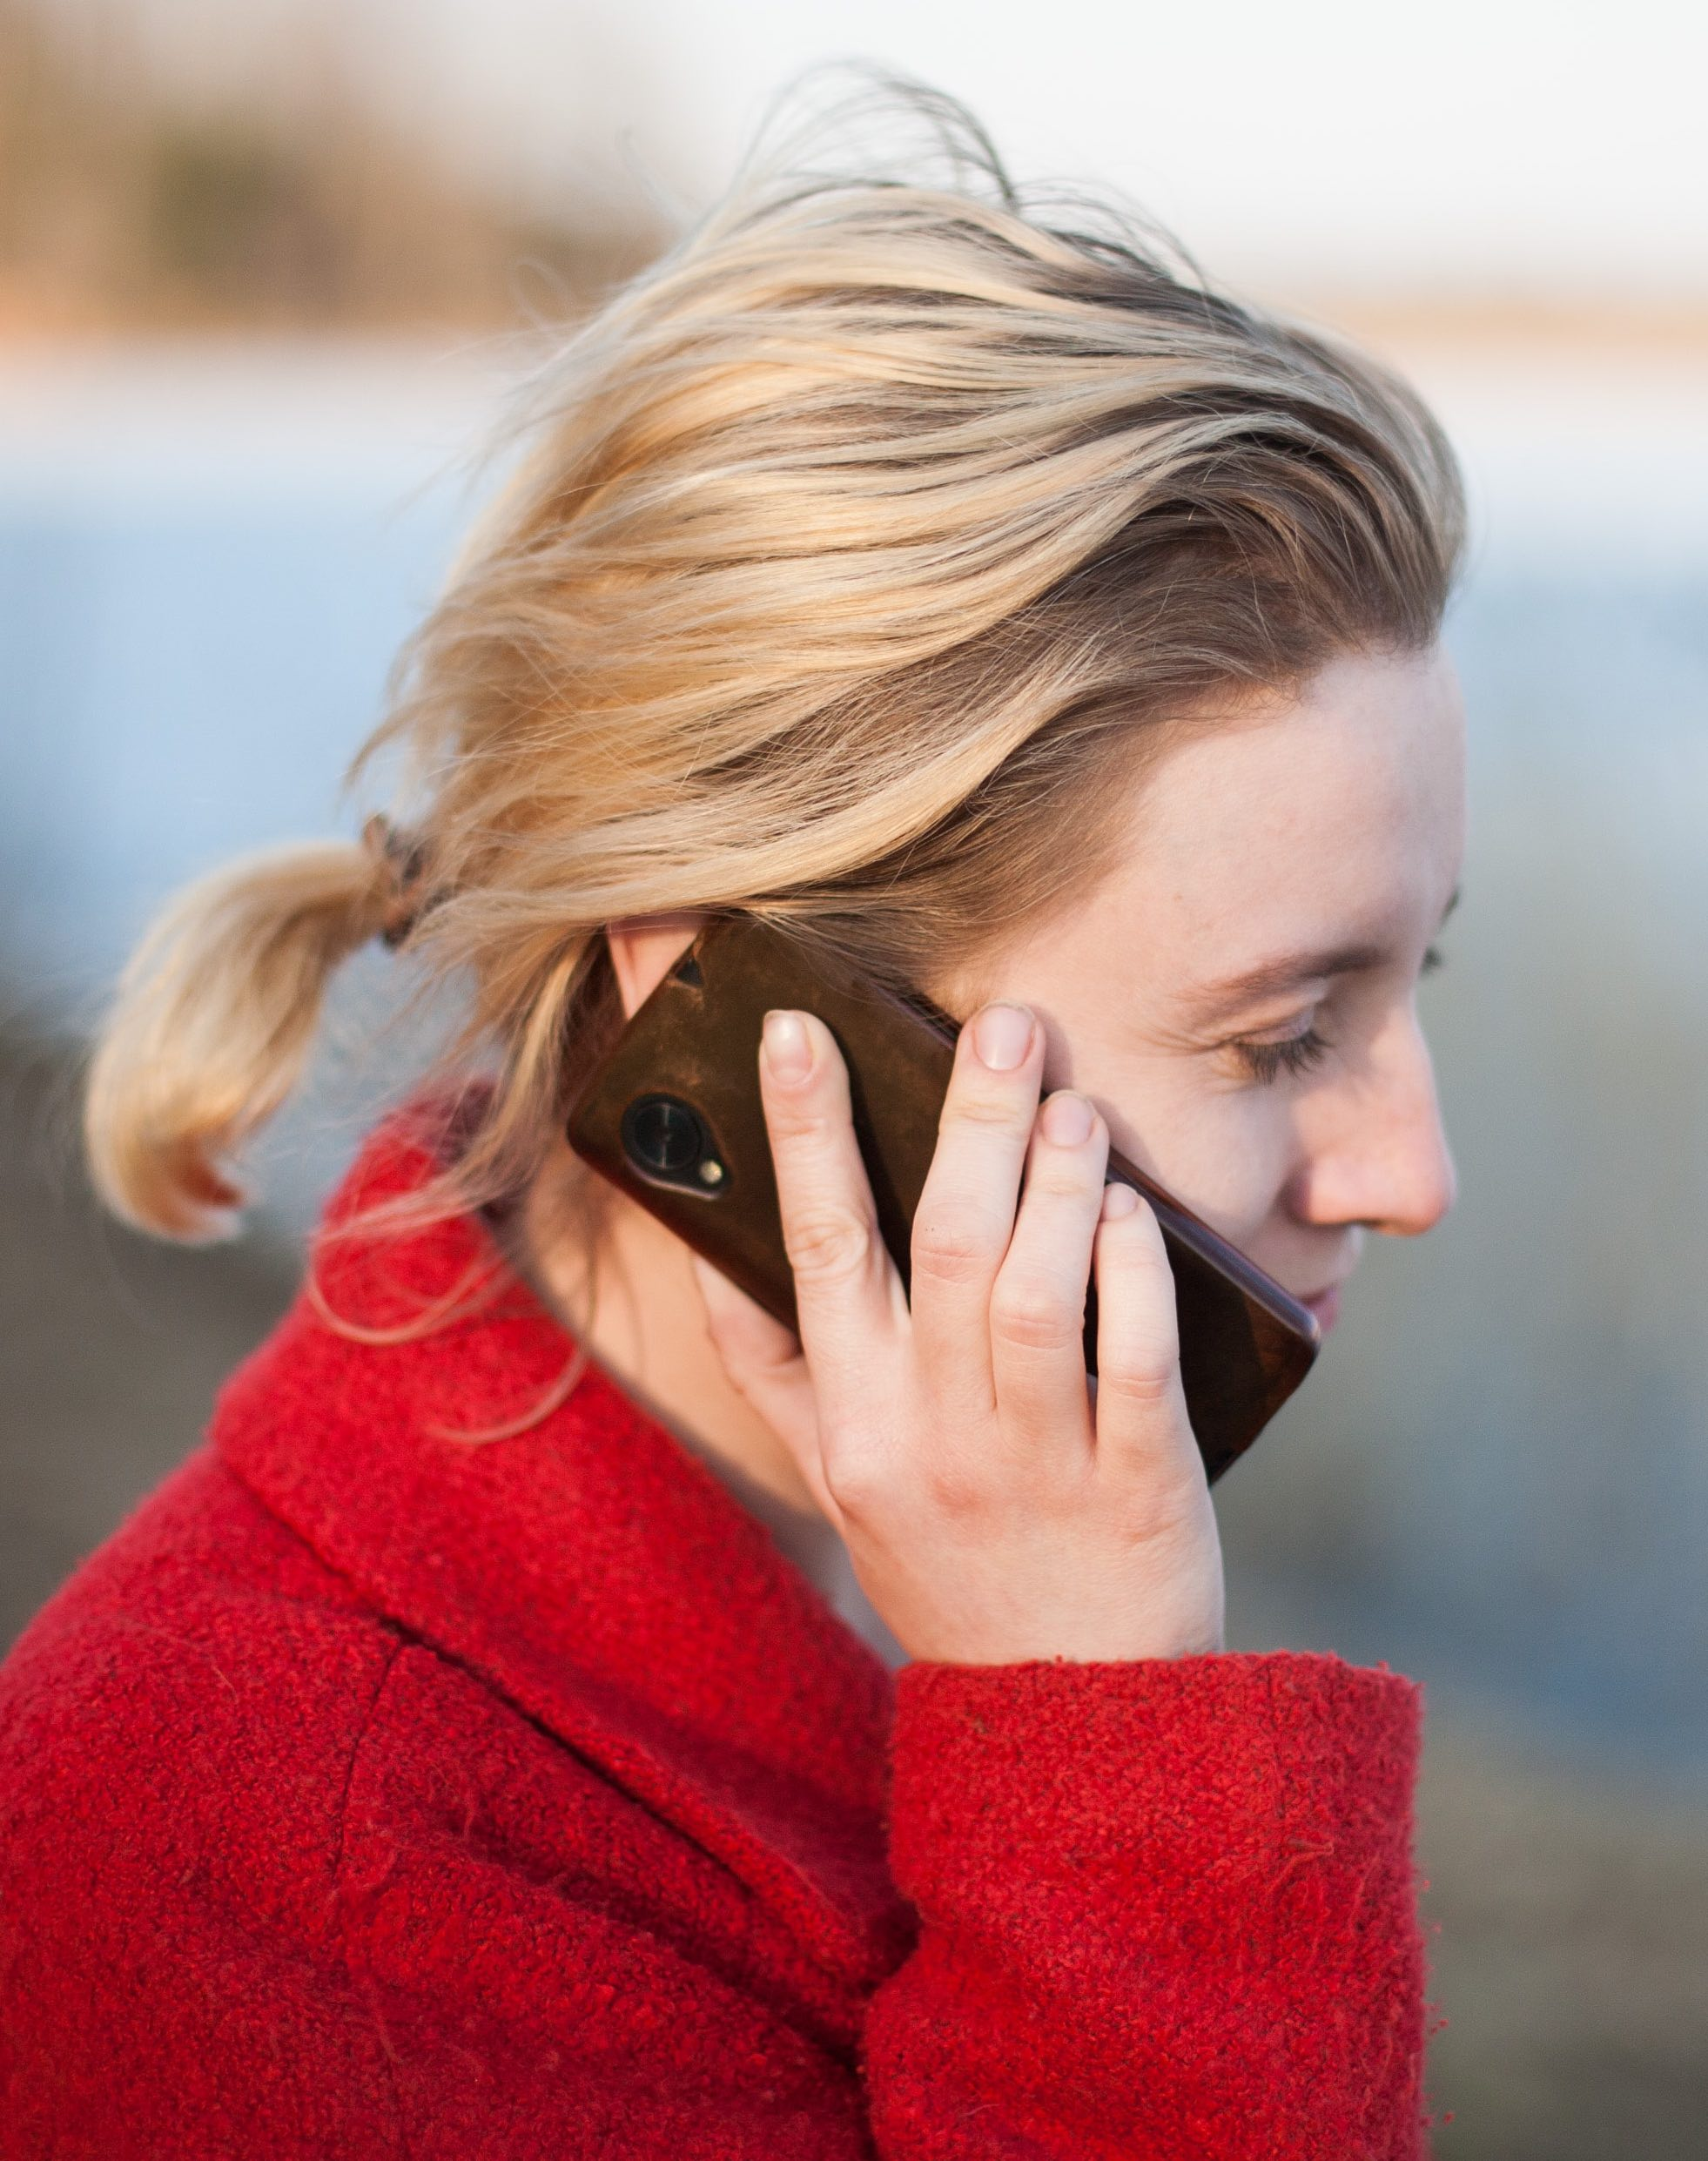 woman in ponytail talking on a phone